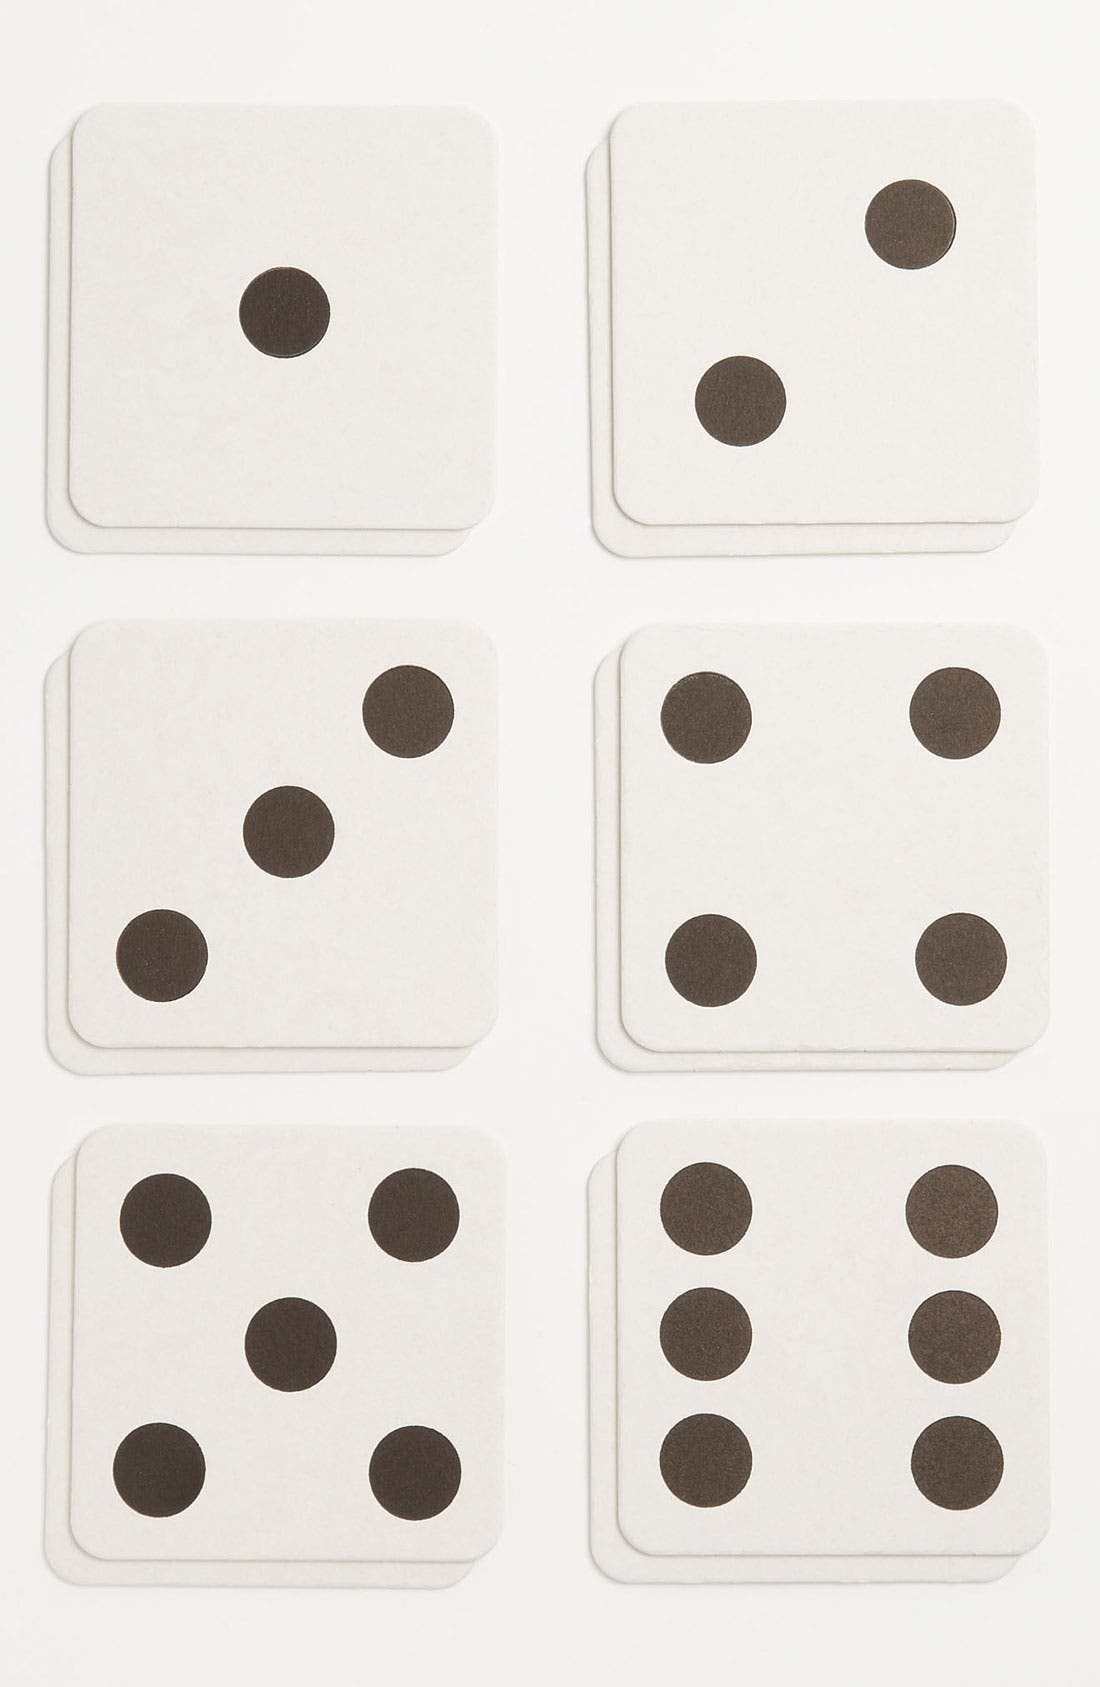 Alternate Image 1 Selected - 'Dice' Coasters (Set of 10)